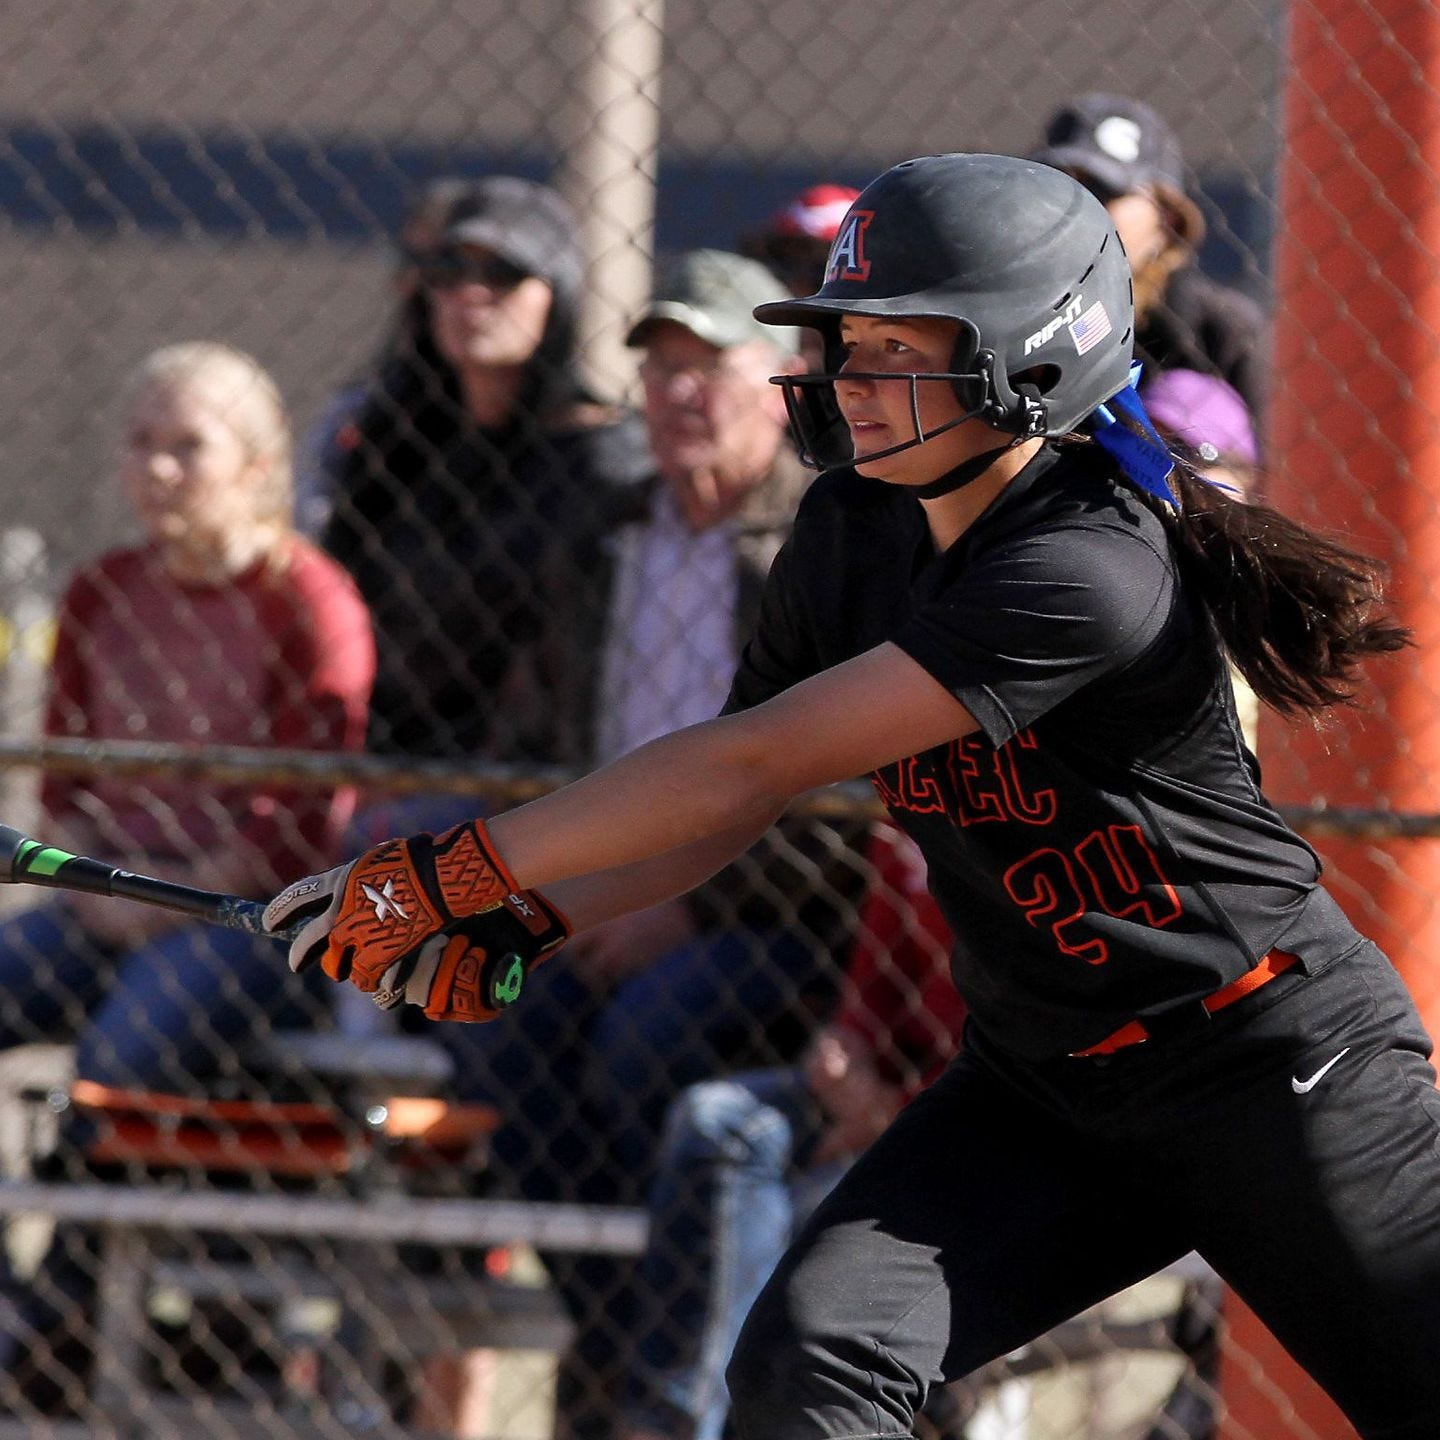 Jocelyn Ulrich keeps evolving as a power hitter